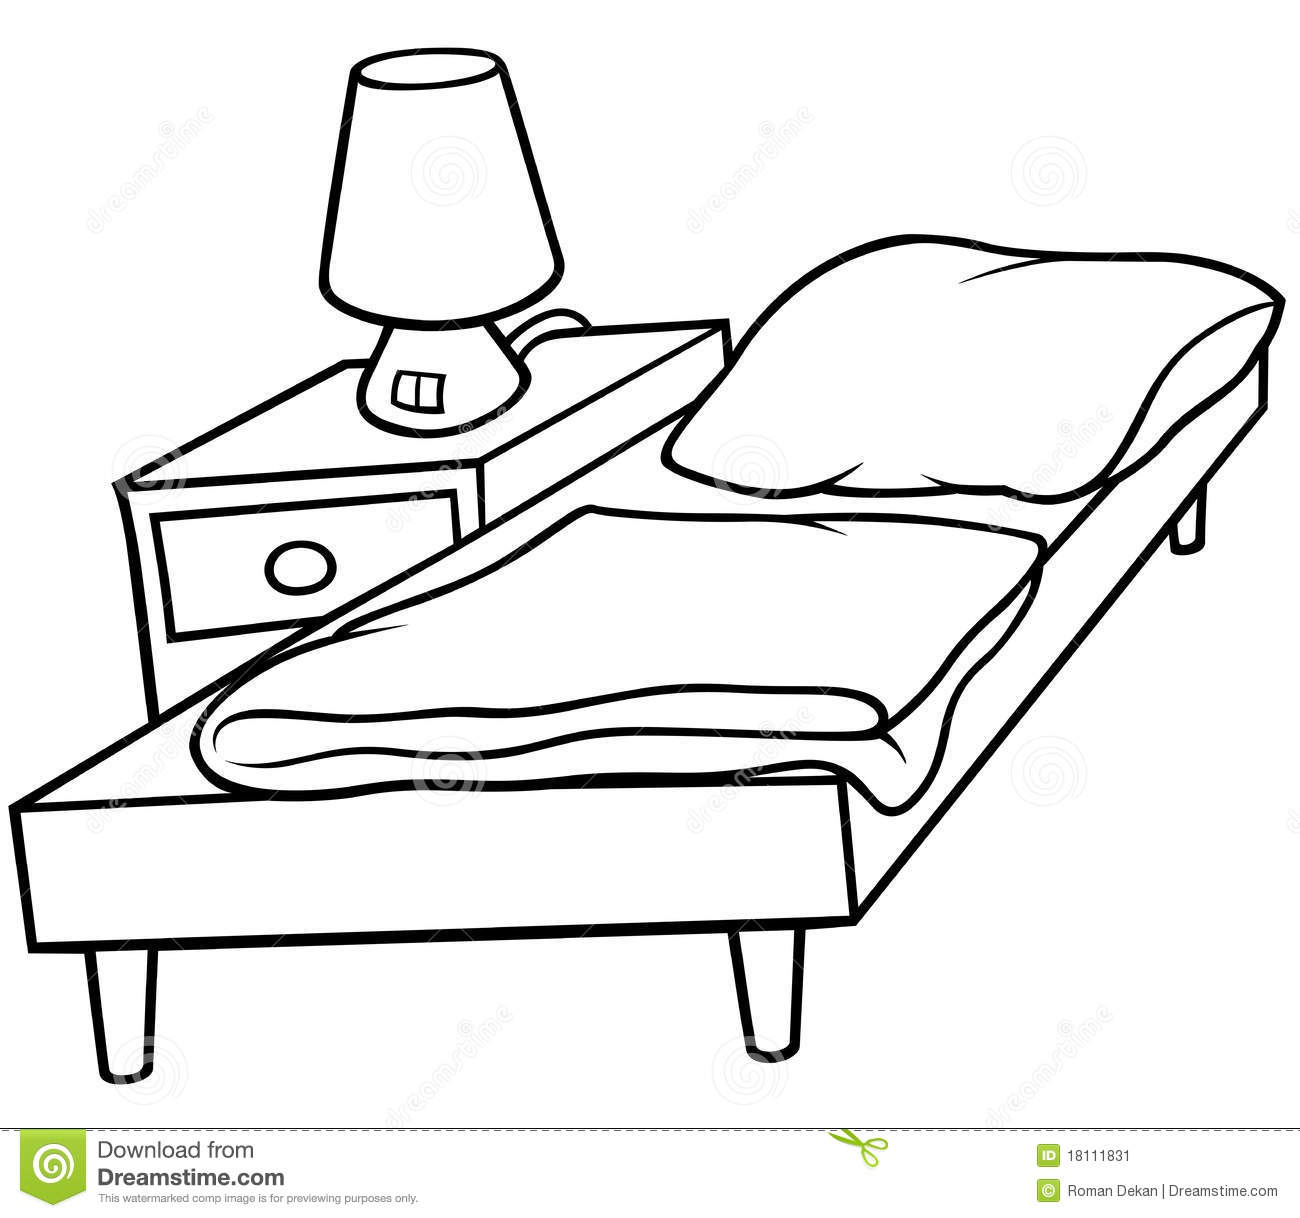 Bed And Bedside Stock Vector. Illustration Of Interior